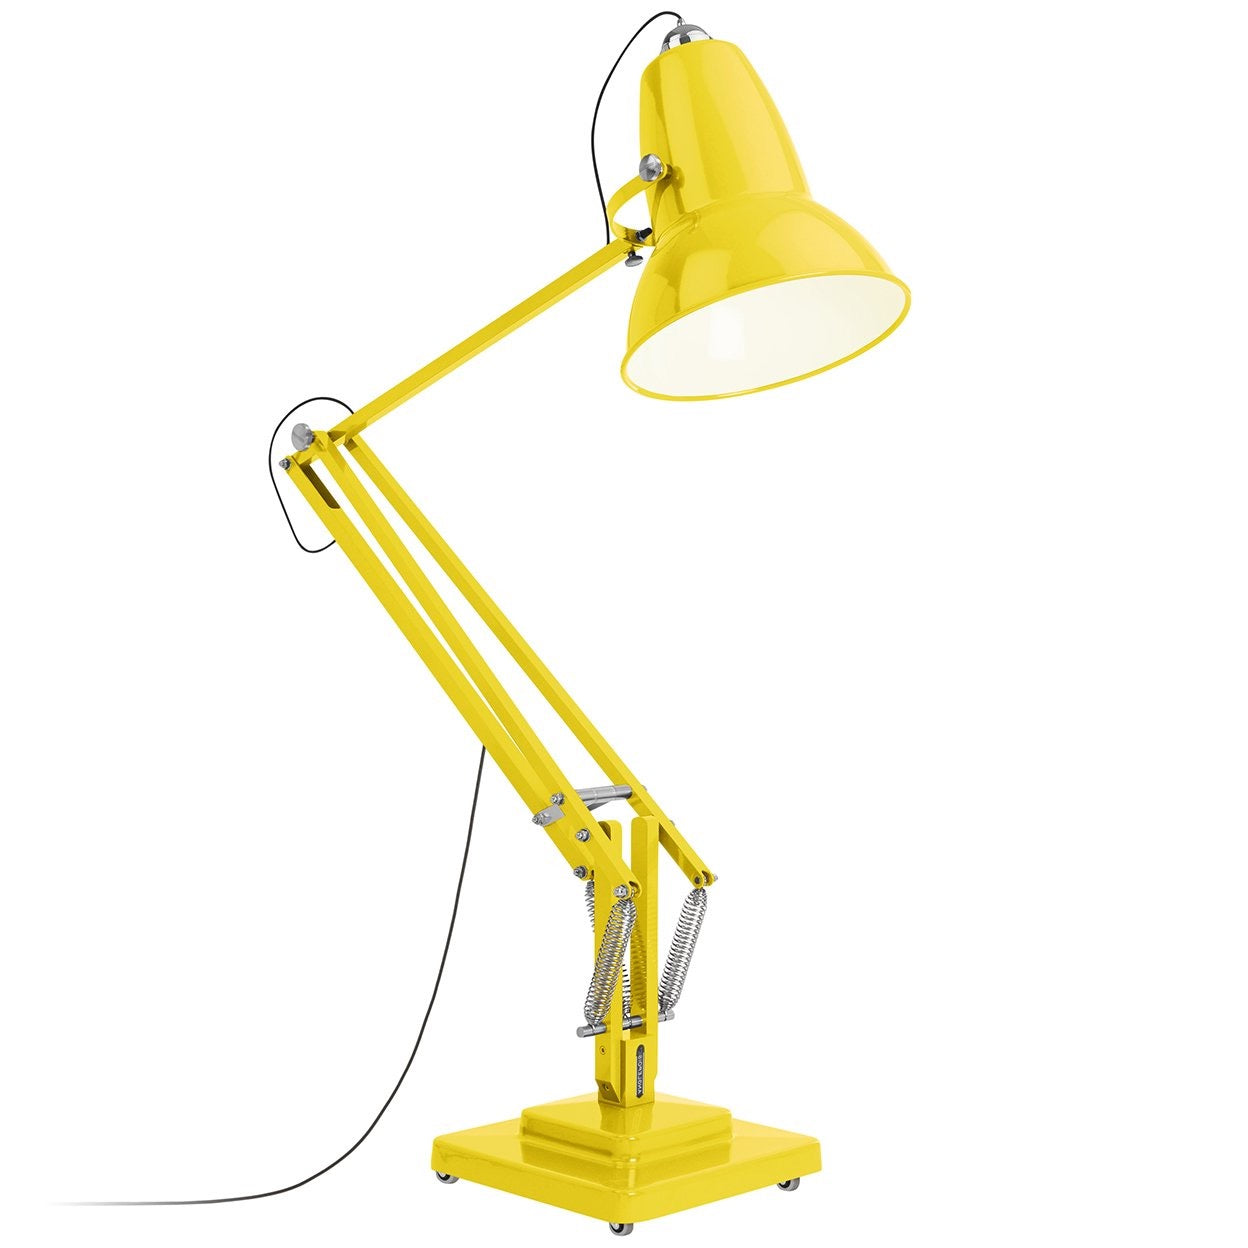 Anglepoise Original Giant 1227 Floor Lamp